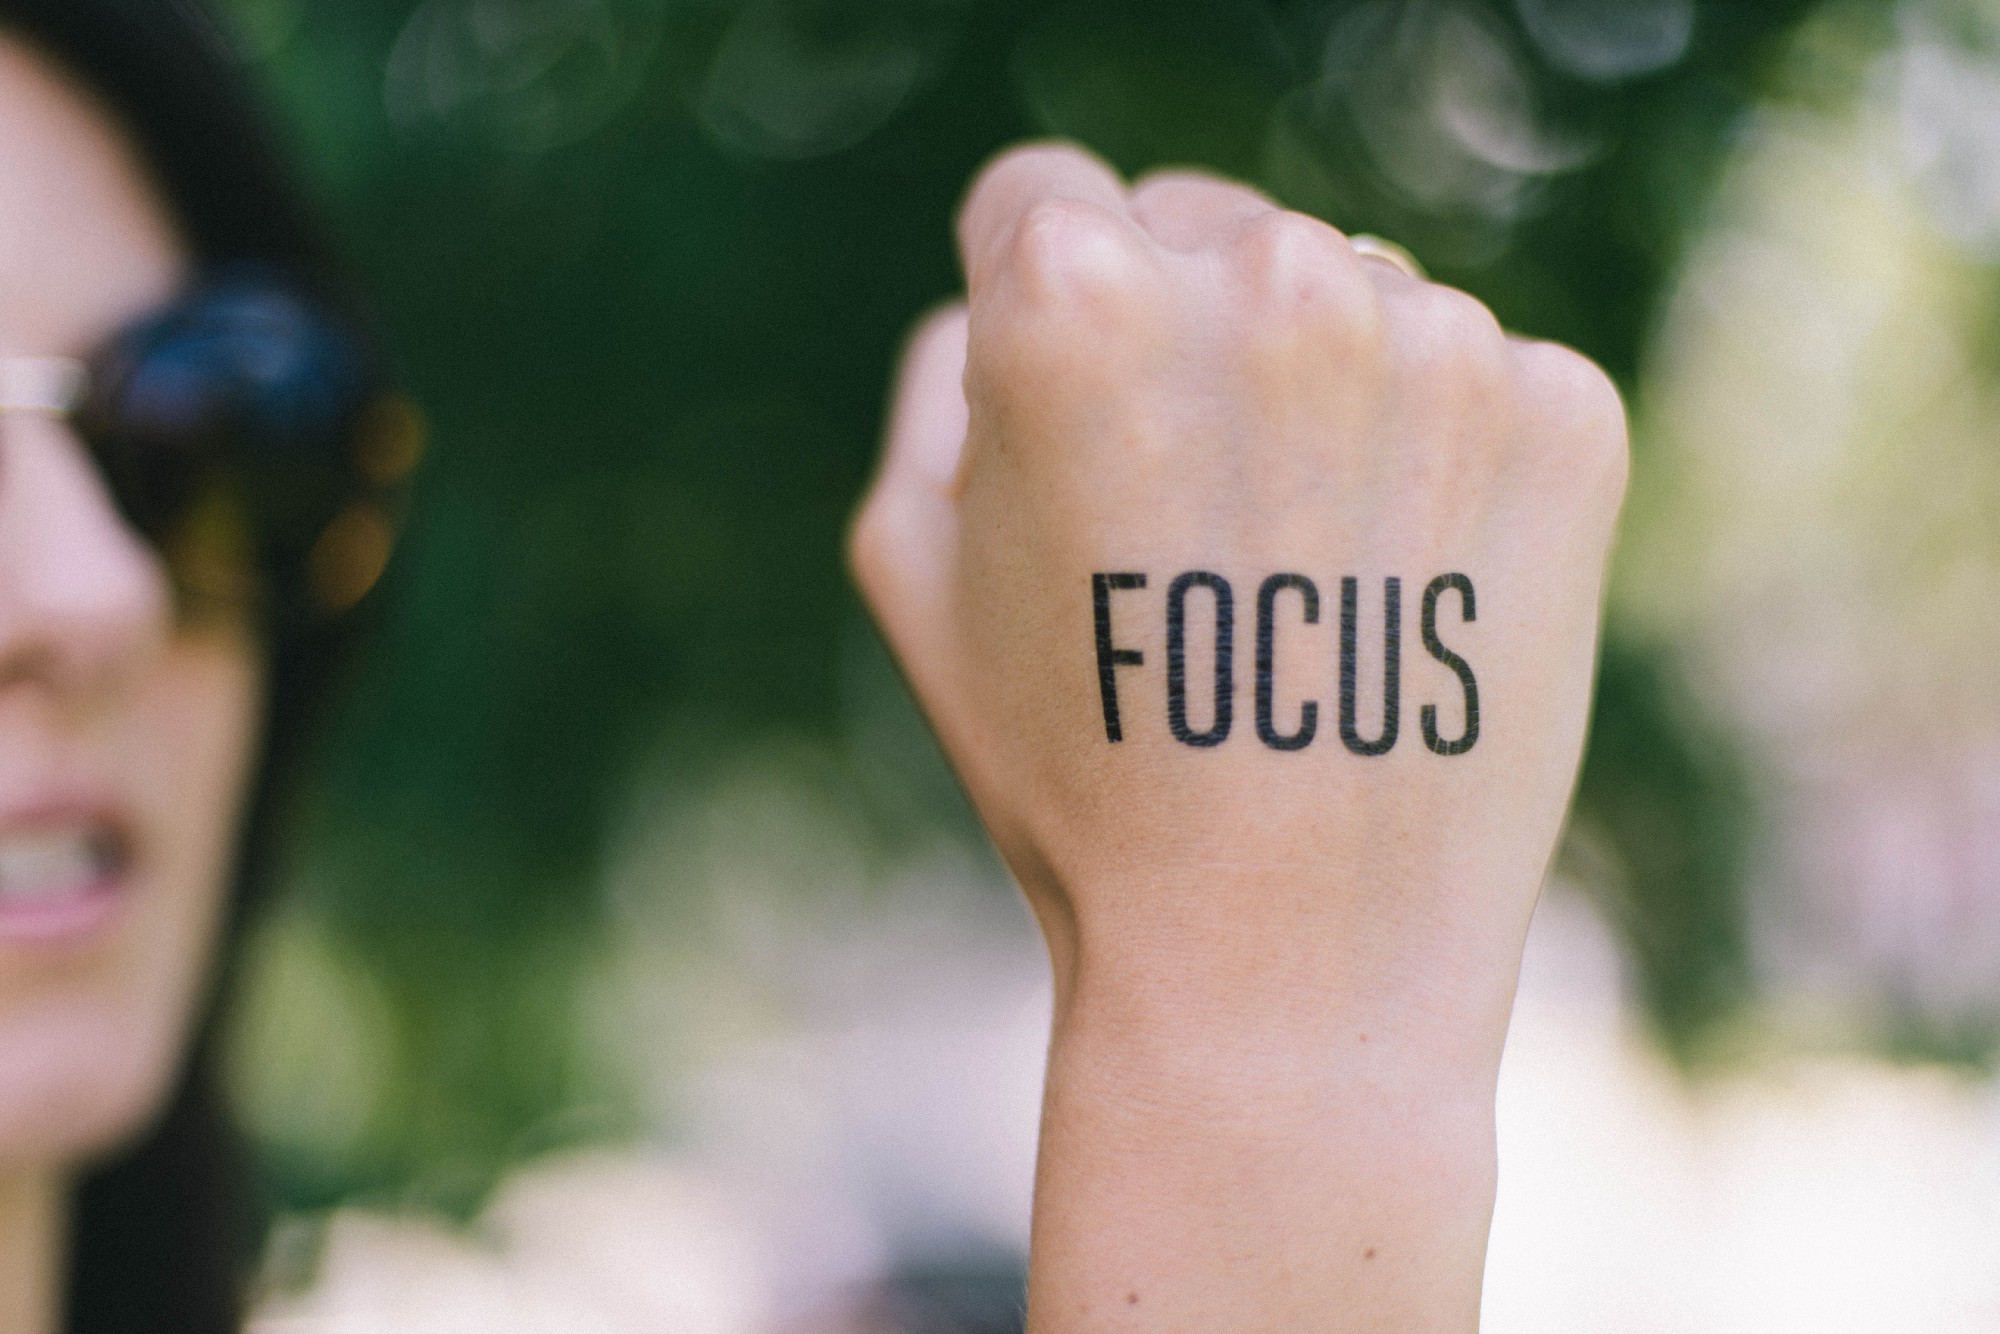 5 Simple Tips to Stay More Focused